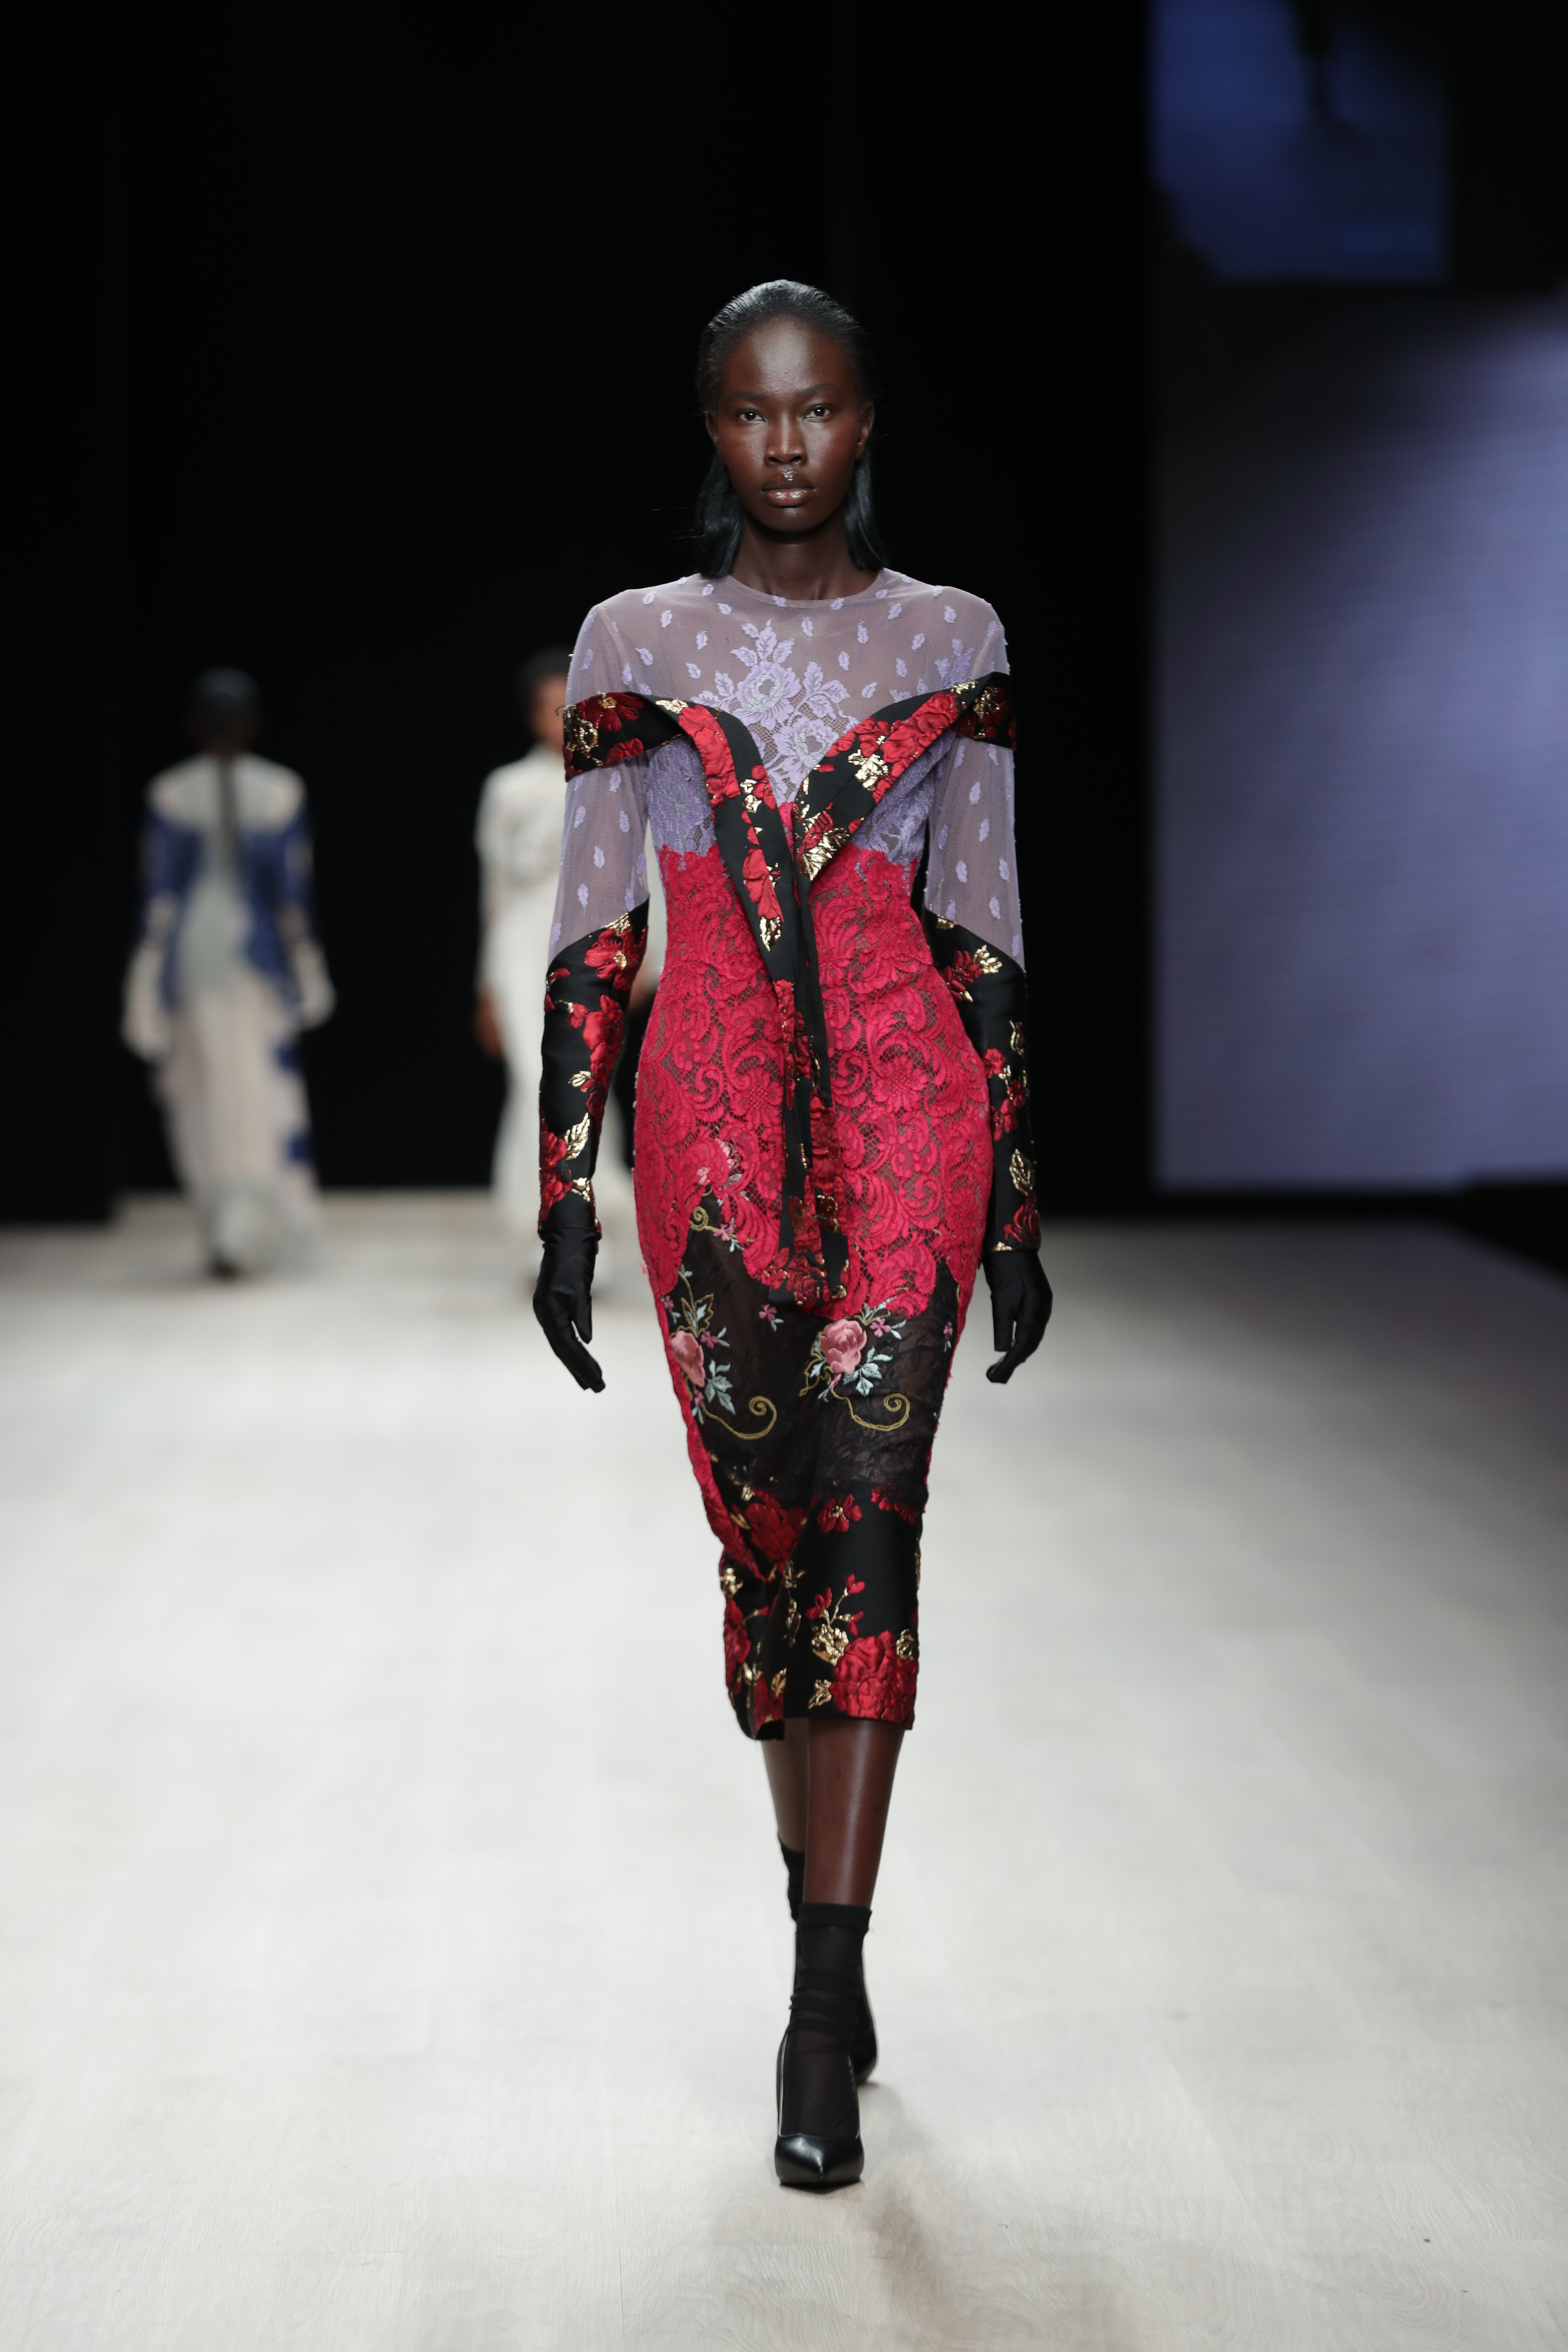 ARISE Fashion Week 2019 – Runway Day 3: Odio Mimonet